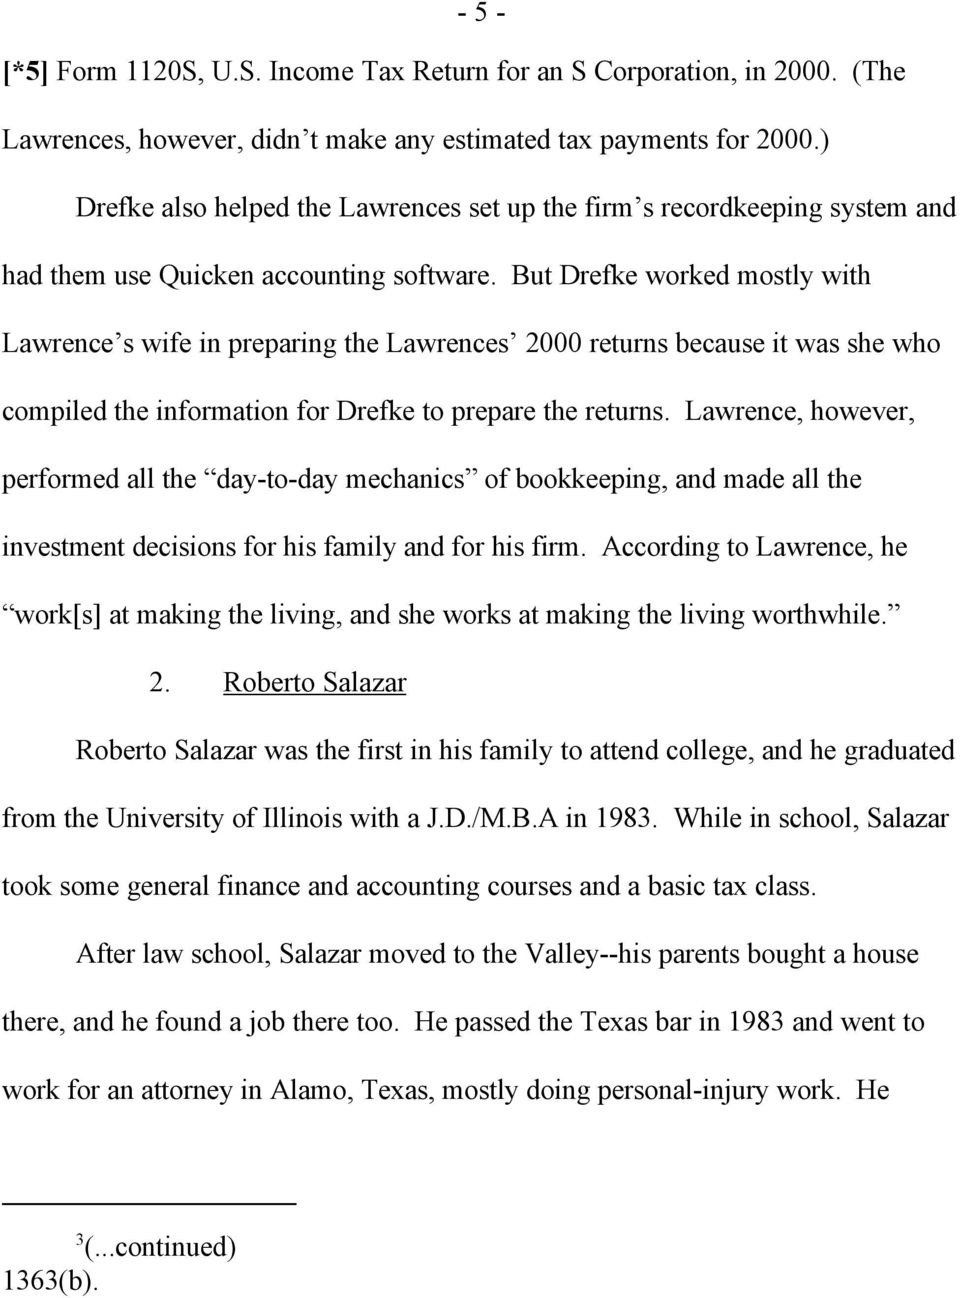 But Drefke worked mostly with Lawrence s wife in preparing the Lawrences 2000 returns because it was she who compiled the information for Drefke to prepare the returns.